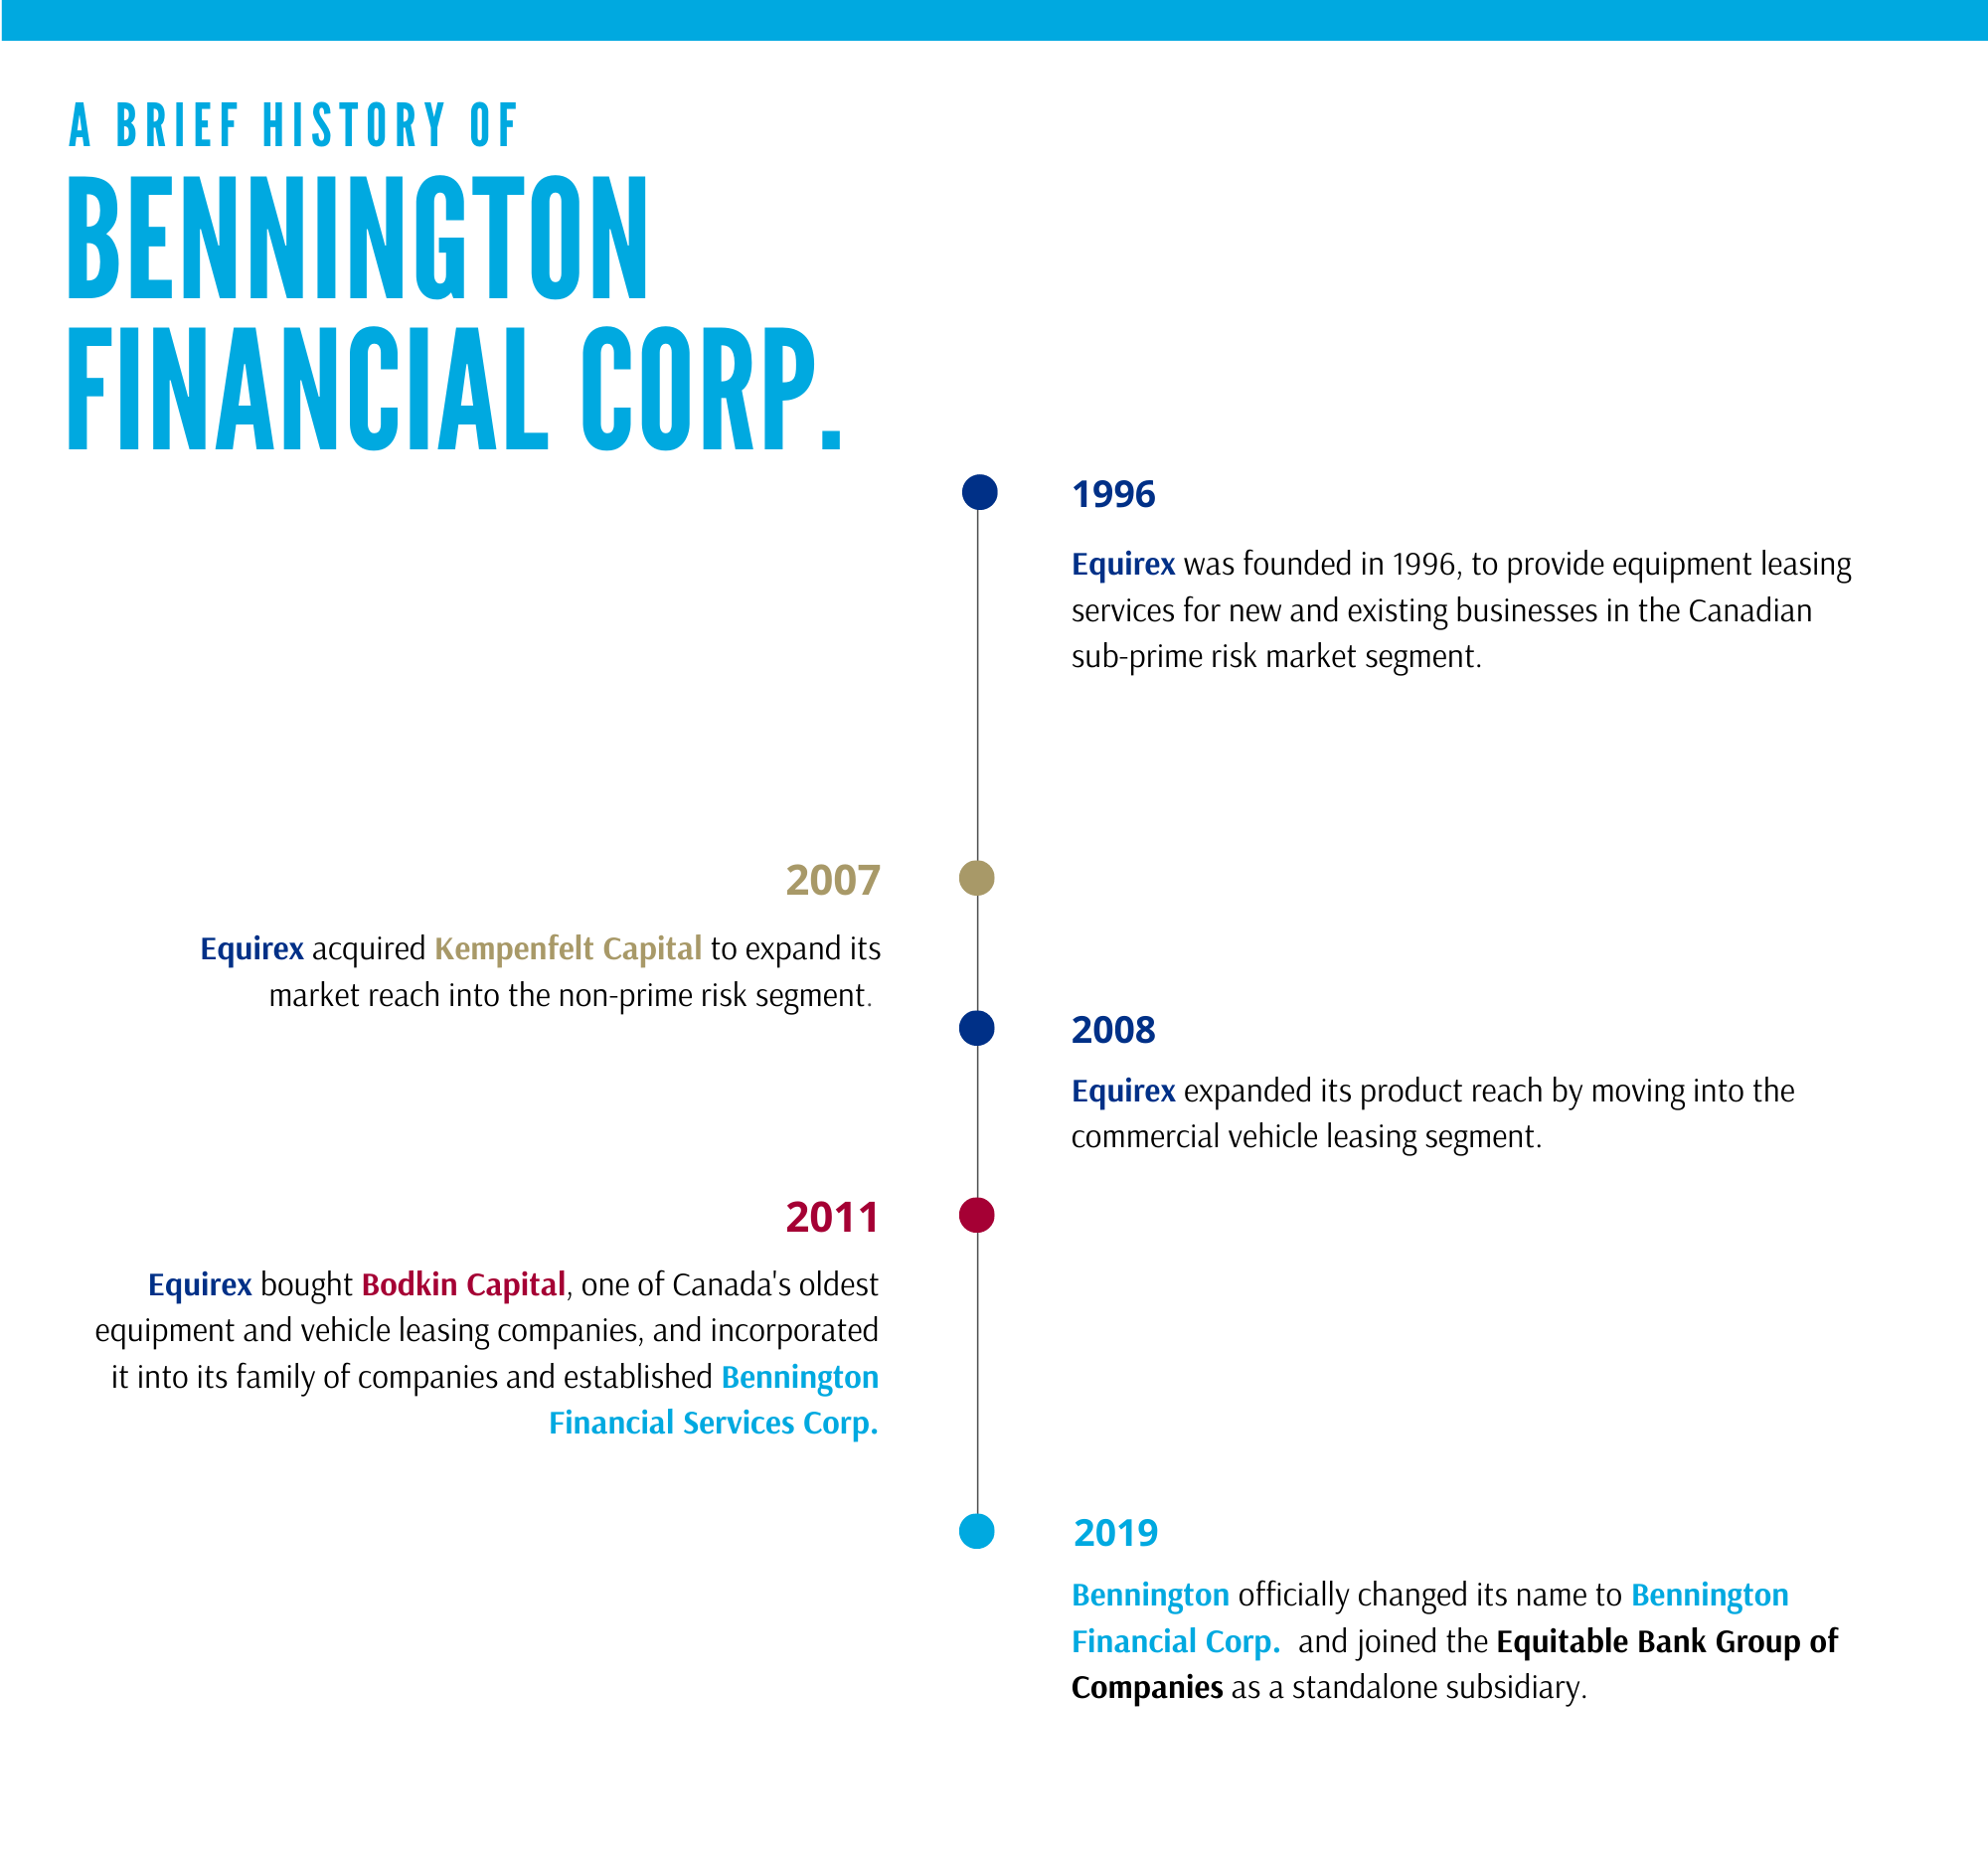 Bennington's company history is detailed in a timeline style graphic. Equirex was founded in 1996, to provide equipment leasing services for new and existing businesses in the Canadian sub-prime risk market segment. In 2007, Equirex acquired Kempenfelt Capital to expand its market reach into the non-prime risk segment. In 2008, Equirex expanded its product reach by moving into the commercial vehicle leasing segment. In 2011, Equirex bought Bodkin Capital, one of Canada's oldest equipment and vehicle leasing companies, and incorporated it into its families, and established Bennington Financial Services Corp. In 2019, Bennington officially changed its name to Bennington Financial Corp. and joined the Equitable Bank Group of Companies as a standalone subsidiary.